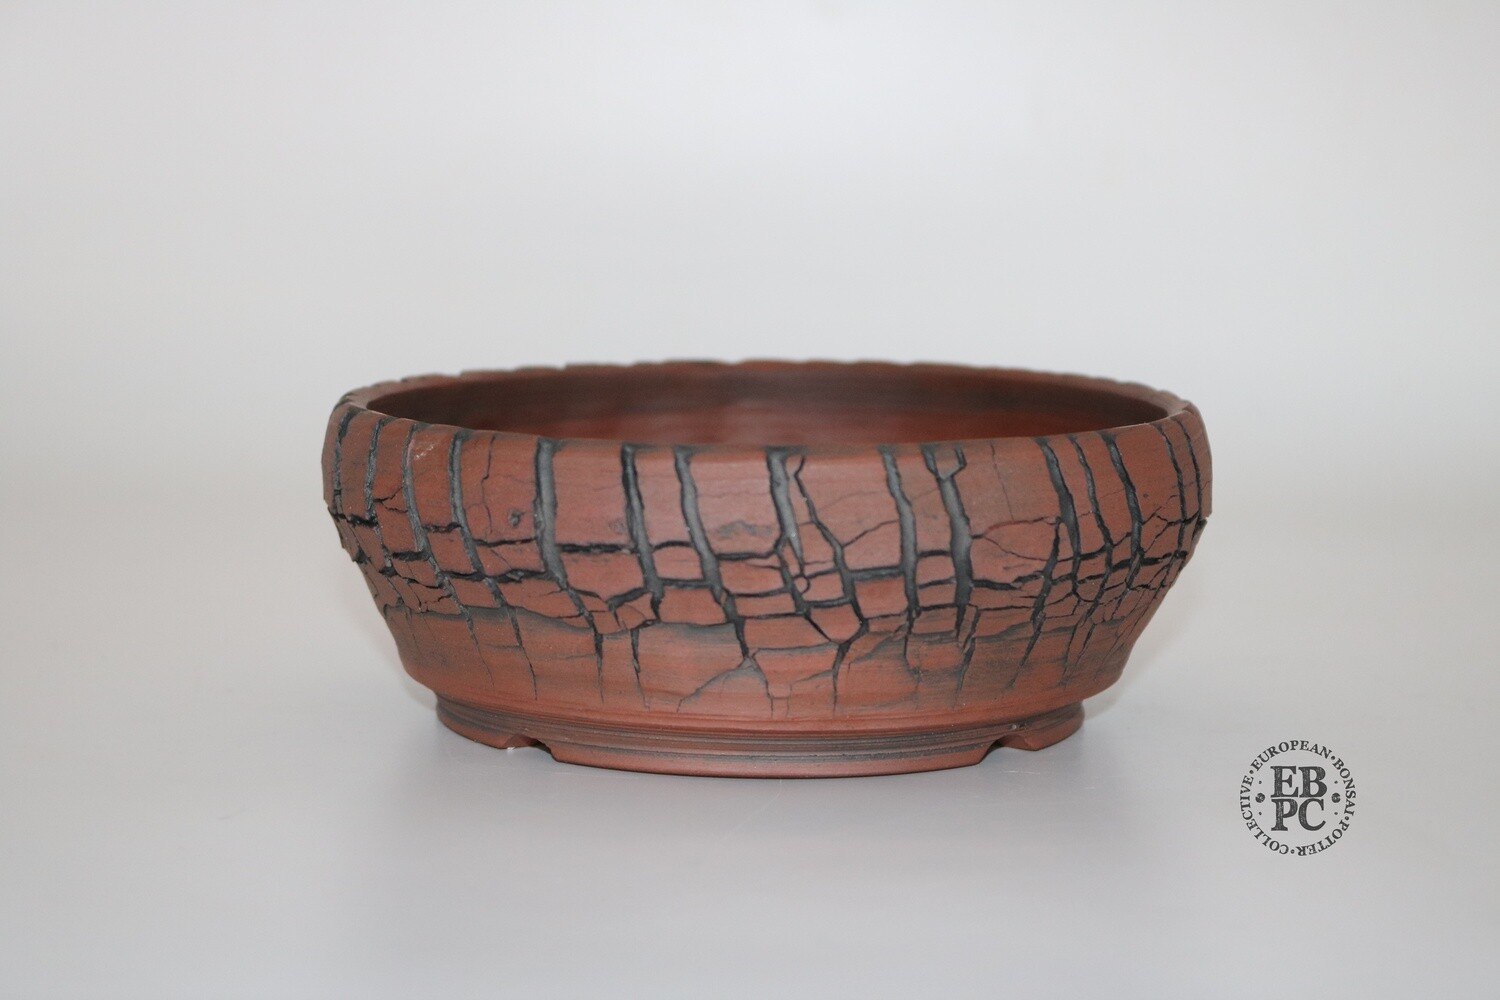 SOLD - Paul Rogers Ceramics - 16.5cm; Unglazed; Round; Deep Crackle Finish; Browns; EBPC Stamped;